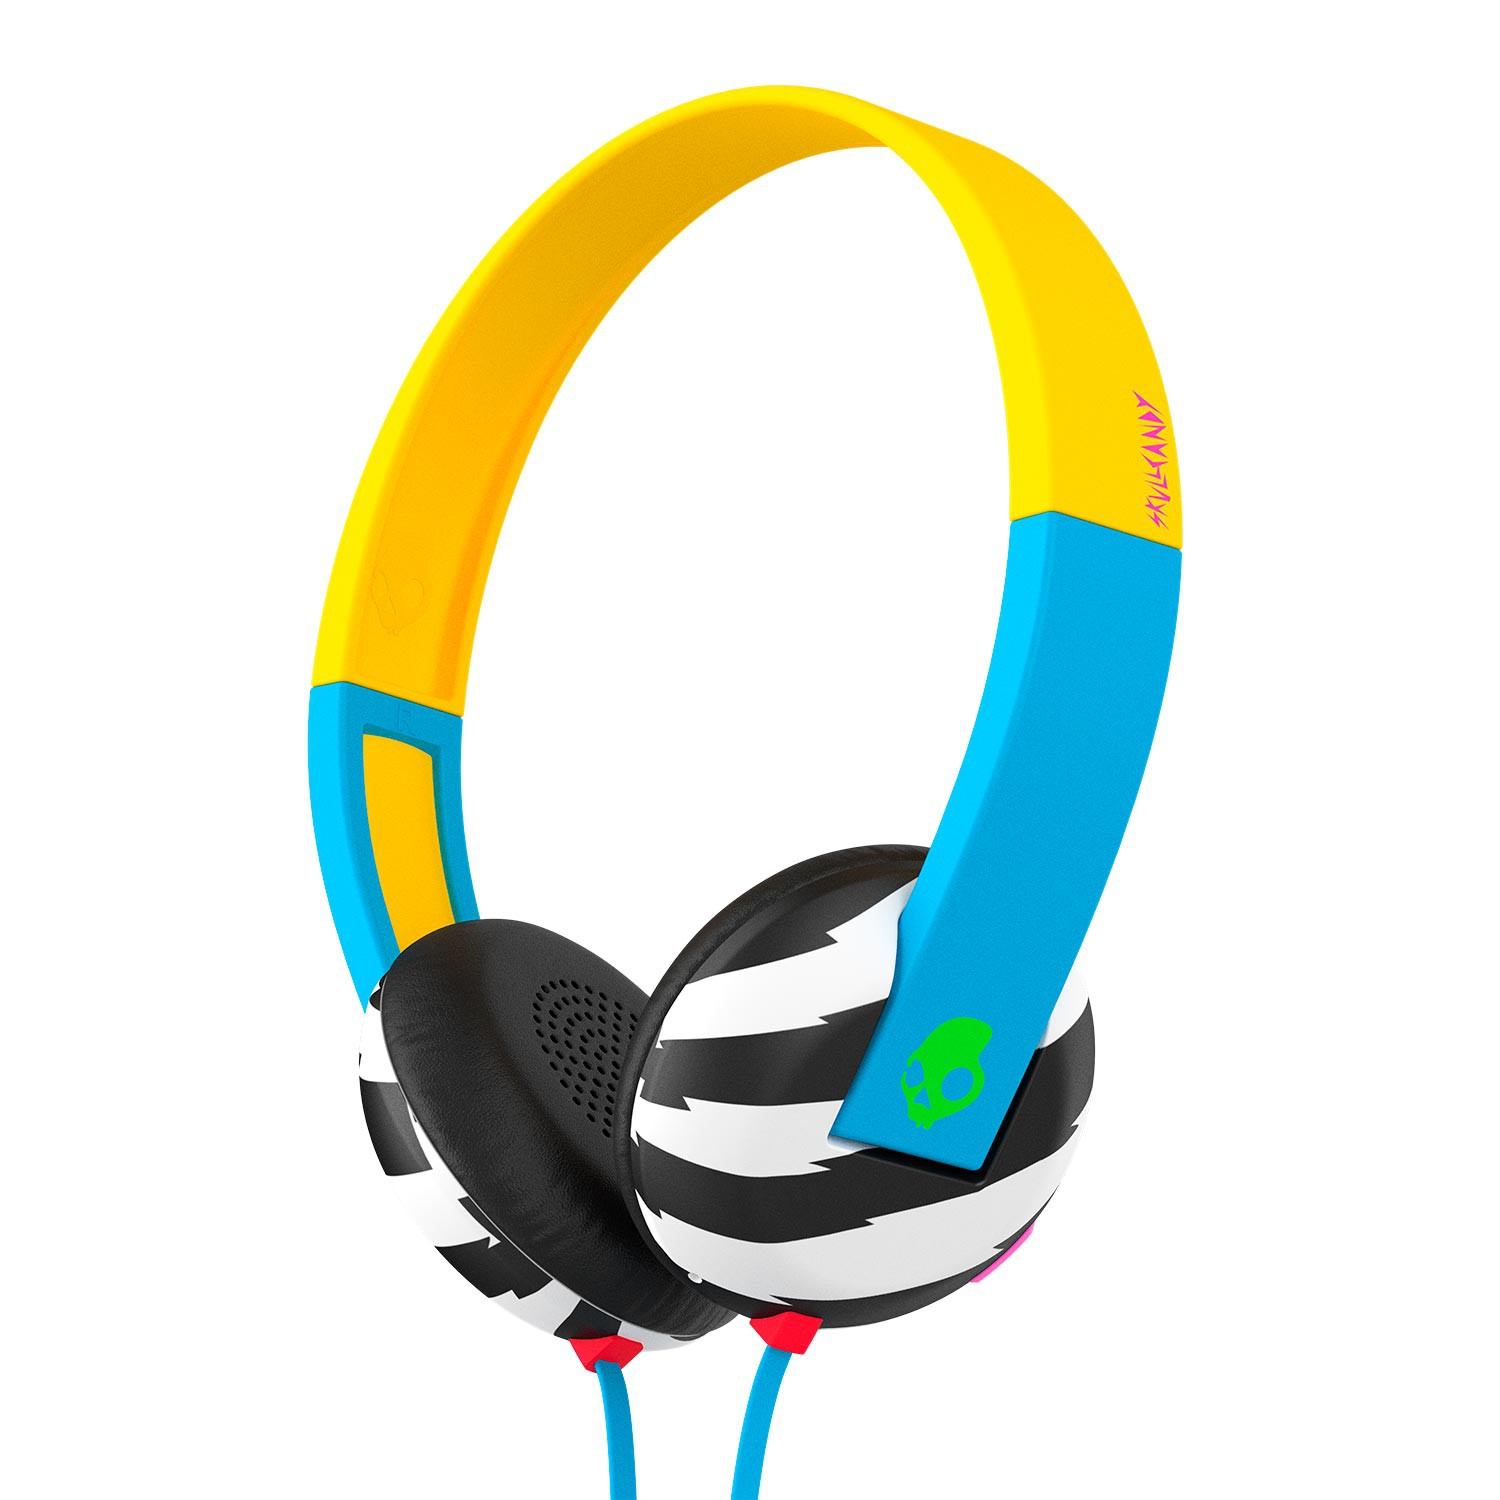 Sluchátka Skullcandy Uproar locals only/blue/green